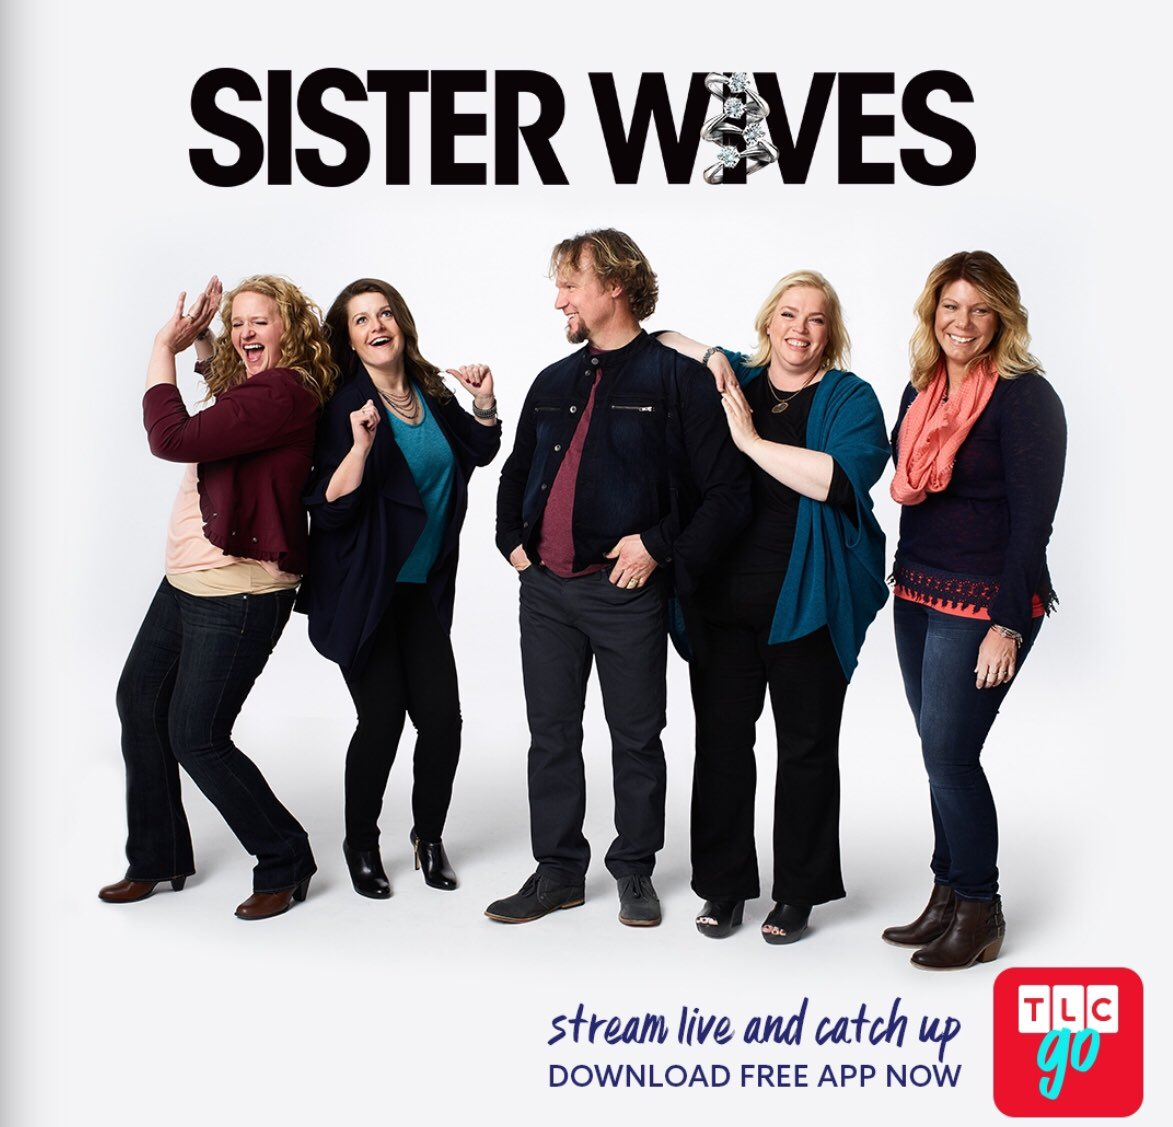 Miss us? Find full episodes of #SisterWi...